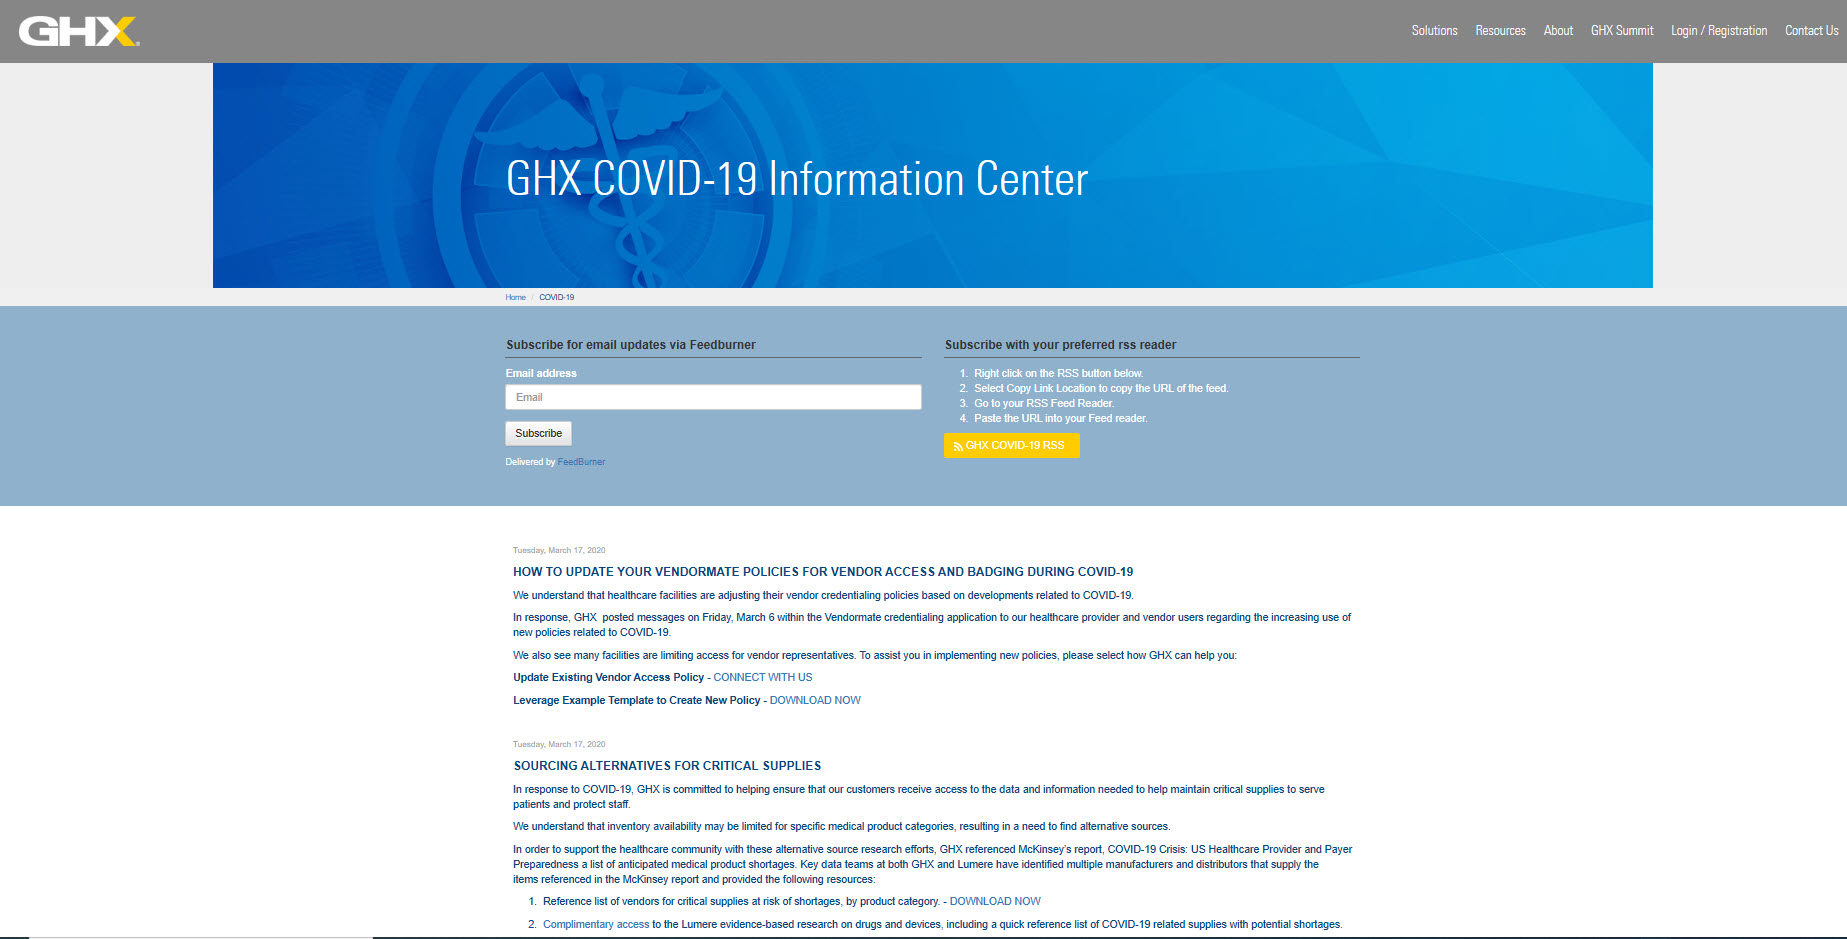 GHX COVID-19 Information Center